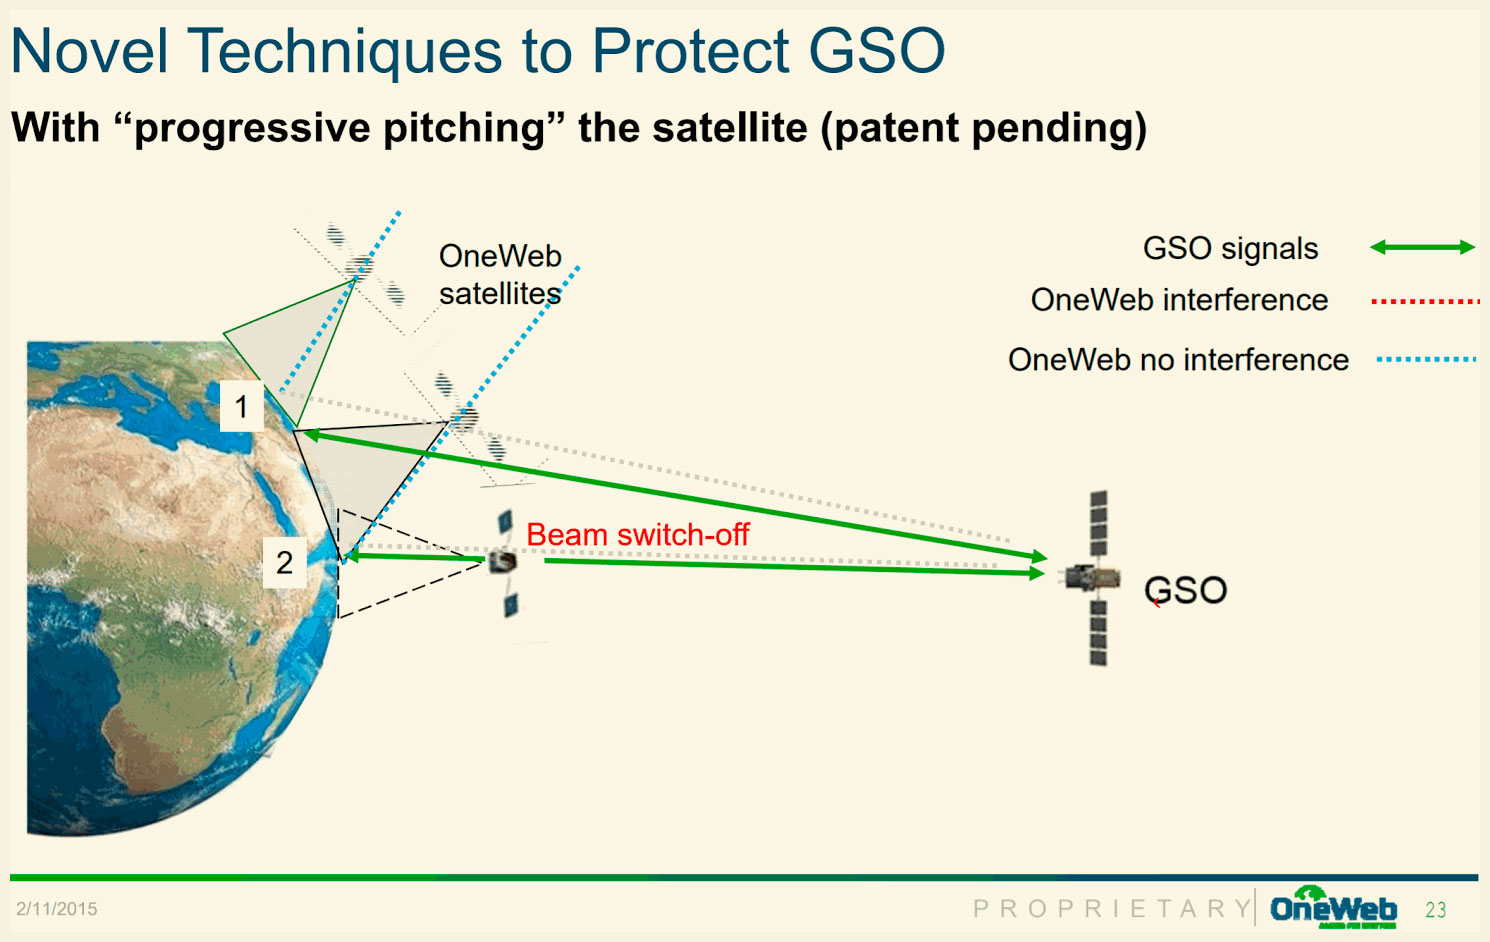 Inevitability of Global Standards for Non-Terrestrial Spectrum Sharing